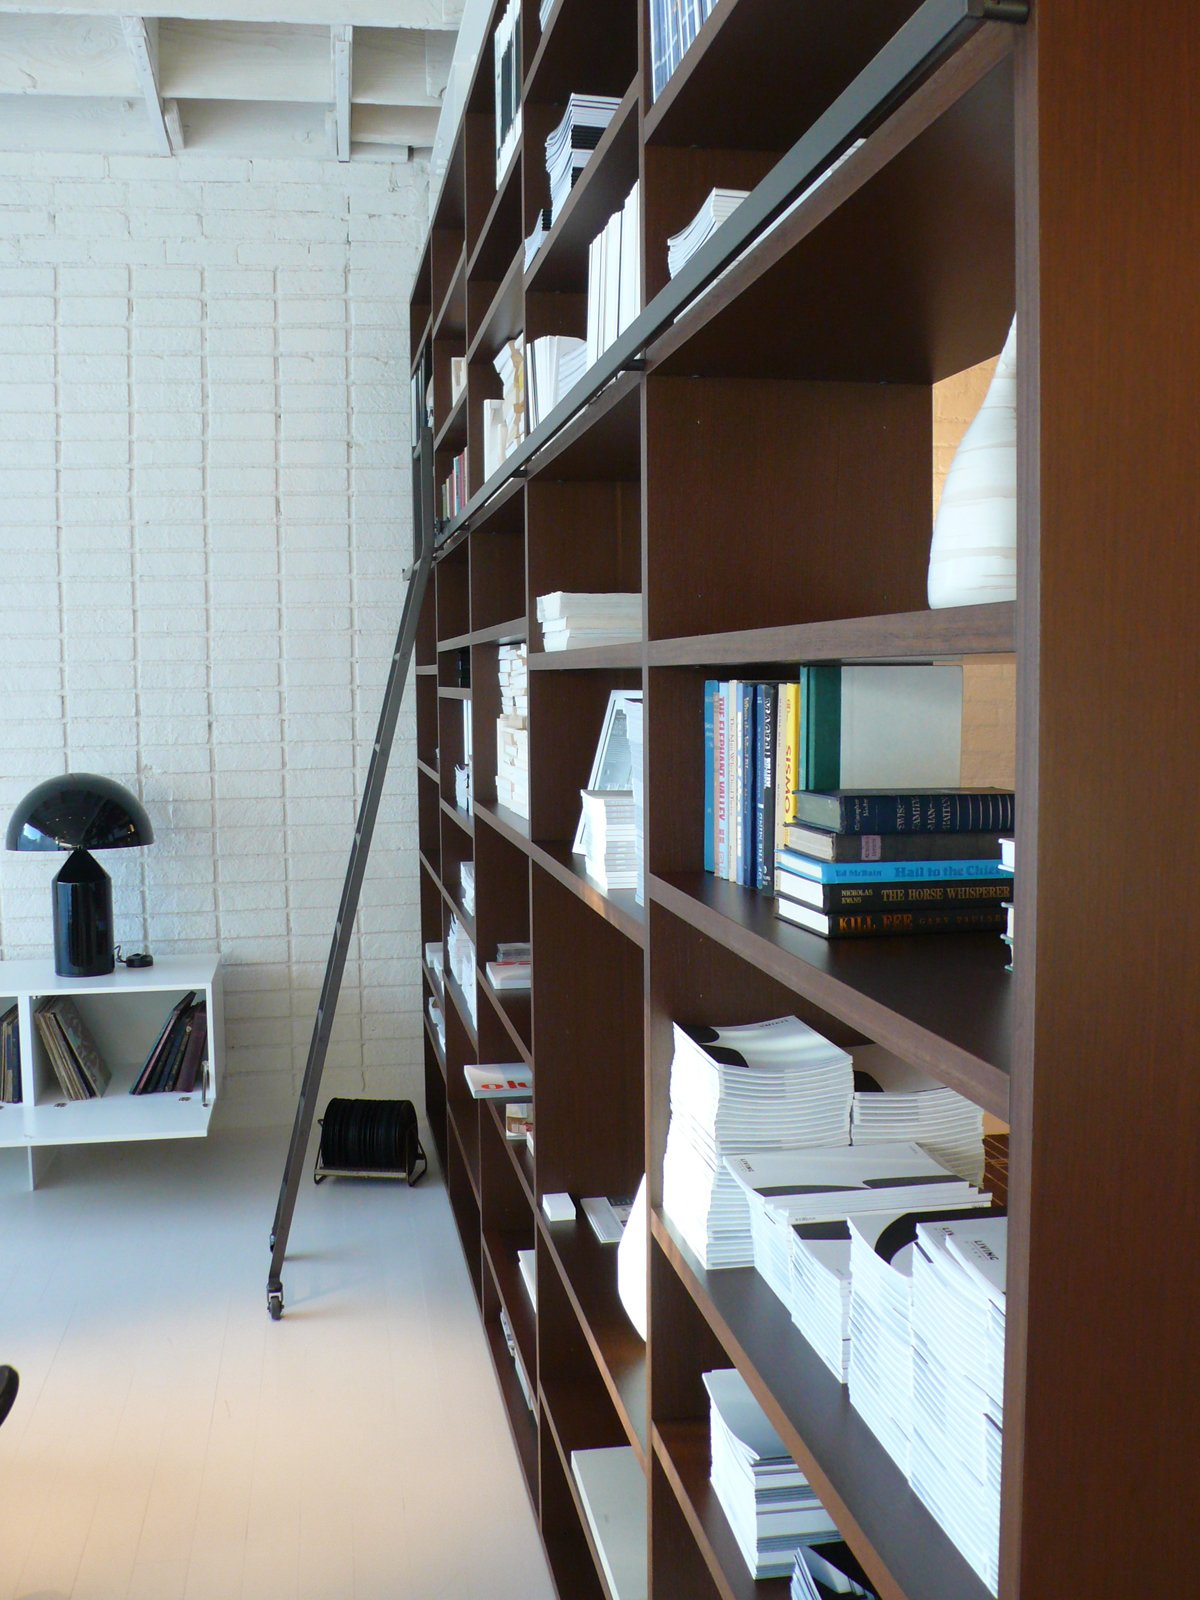 The showroom's System NXT is outfitted with a library ladder and a multitude of design books.  Photo 7 of 7 in 10 Minutes With Piero Lissoni